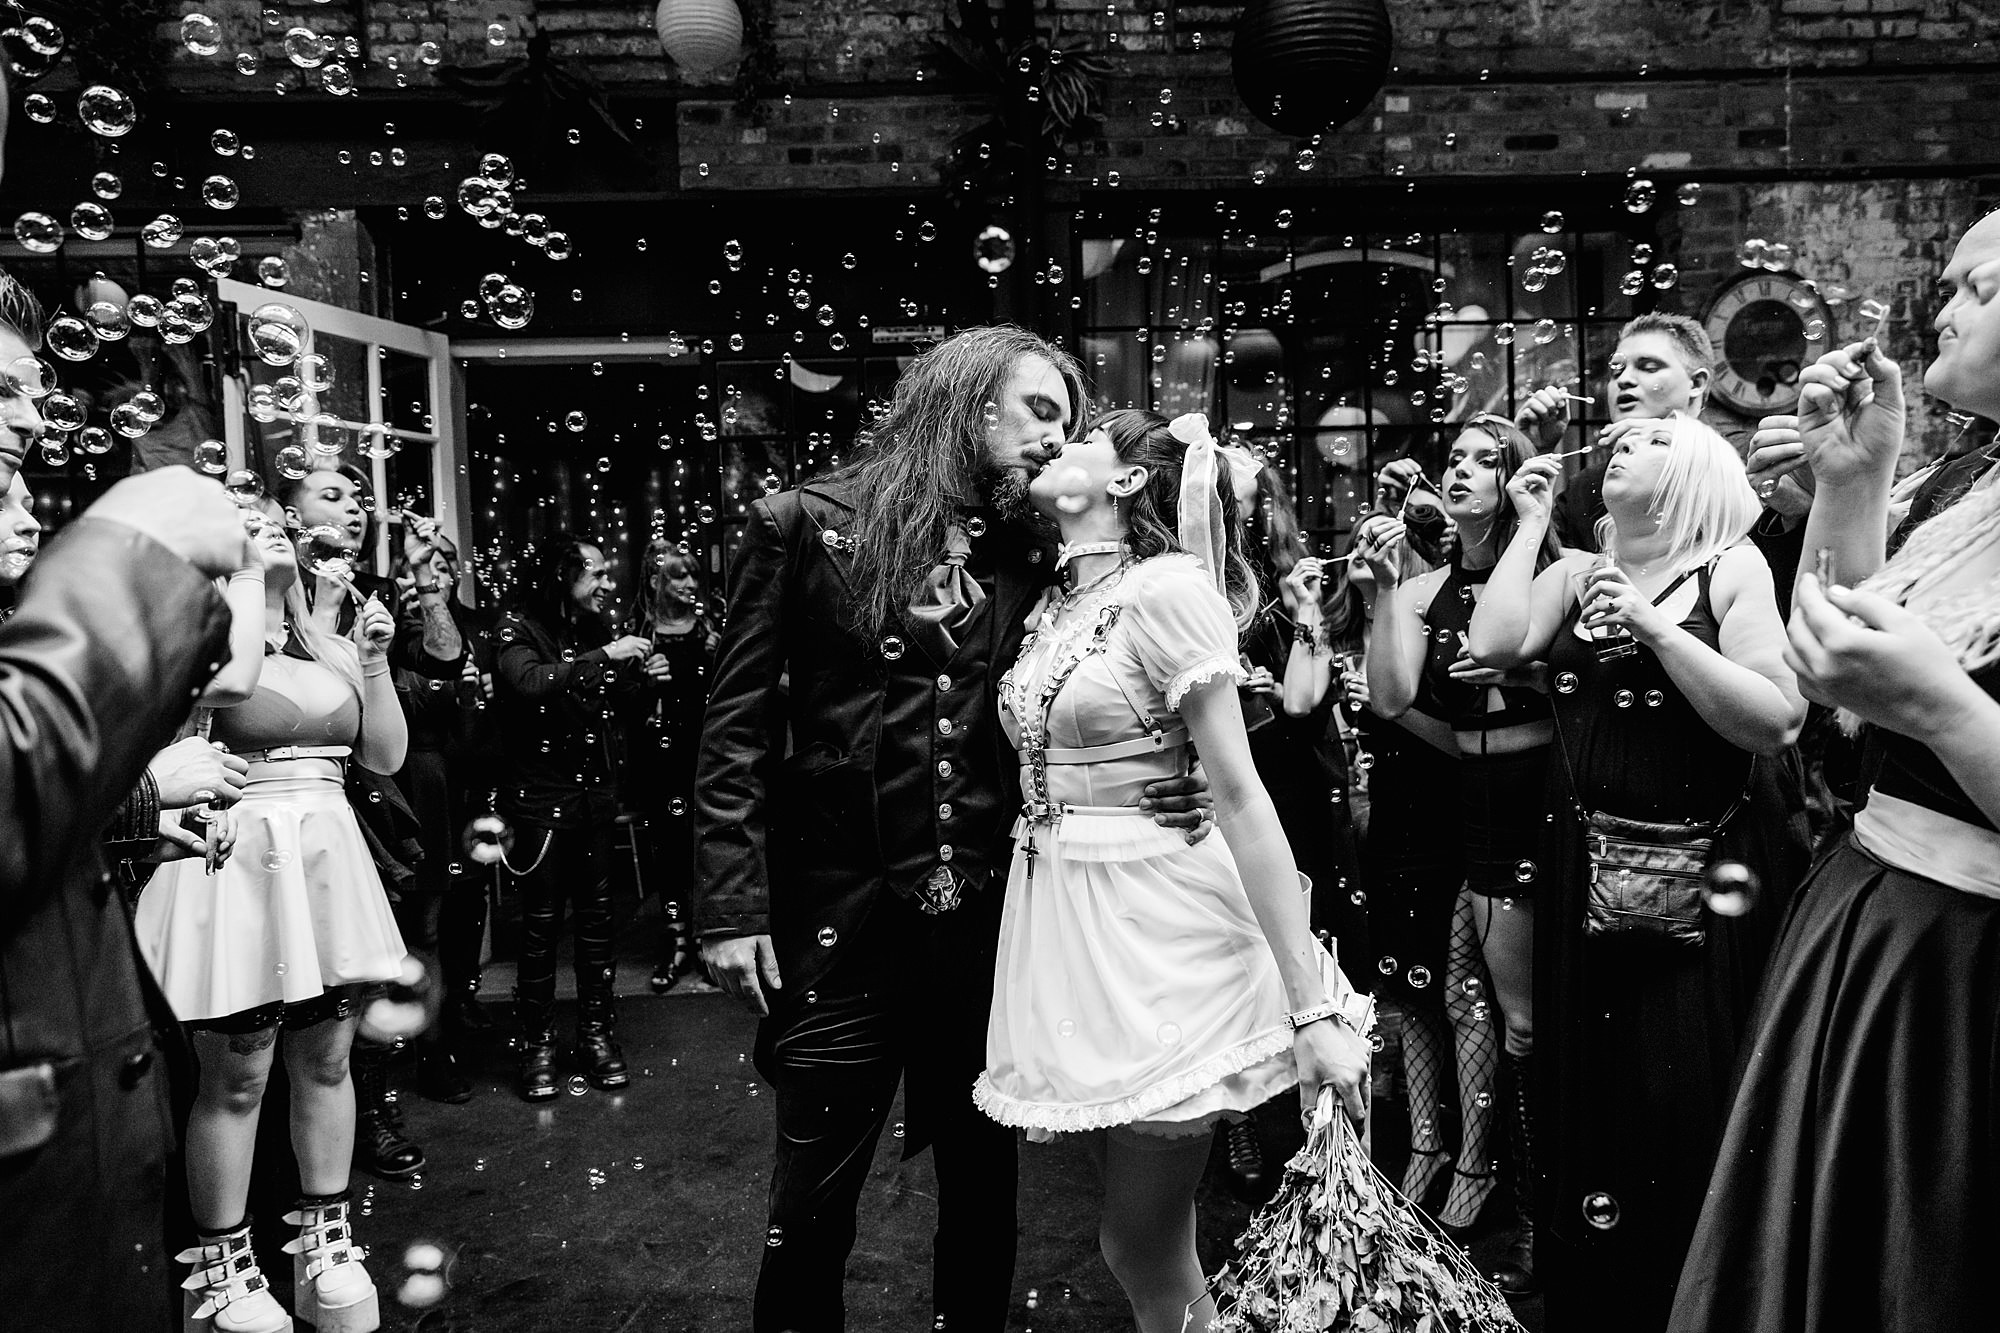 goth bride and groom kissing amongst bubbles